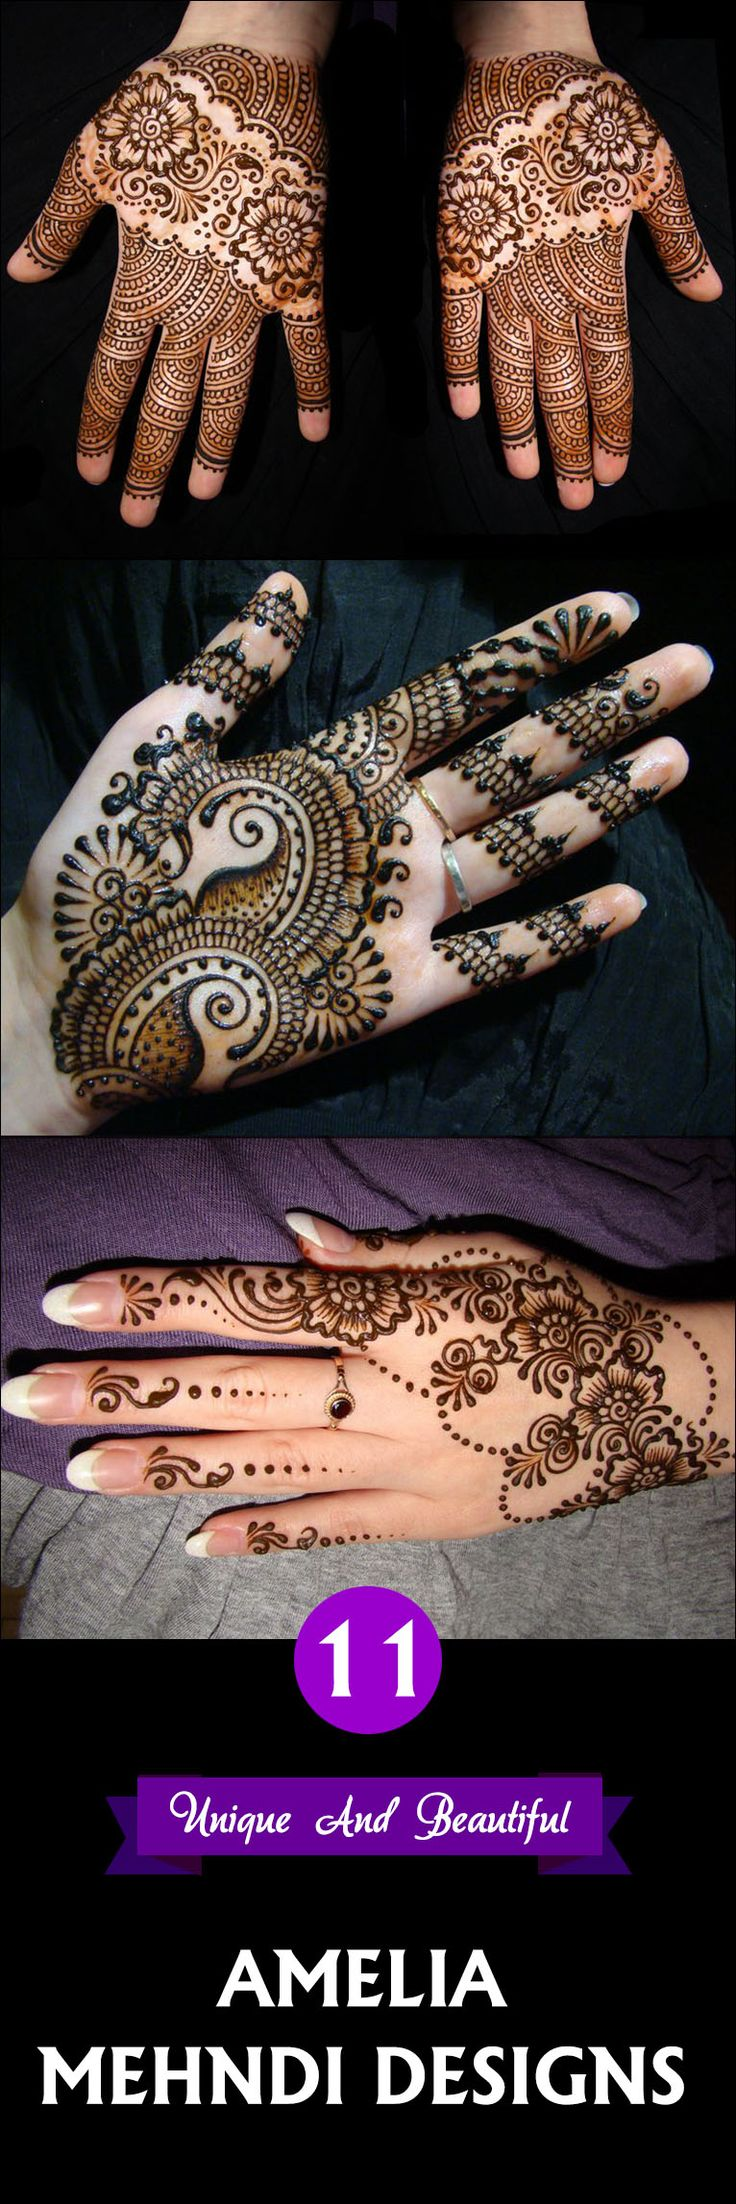 11 Unique And Beautiful Amelia Mehndi Designs